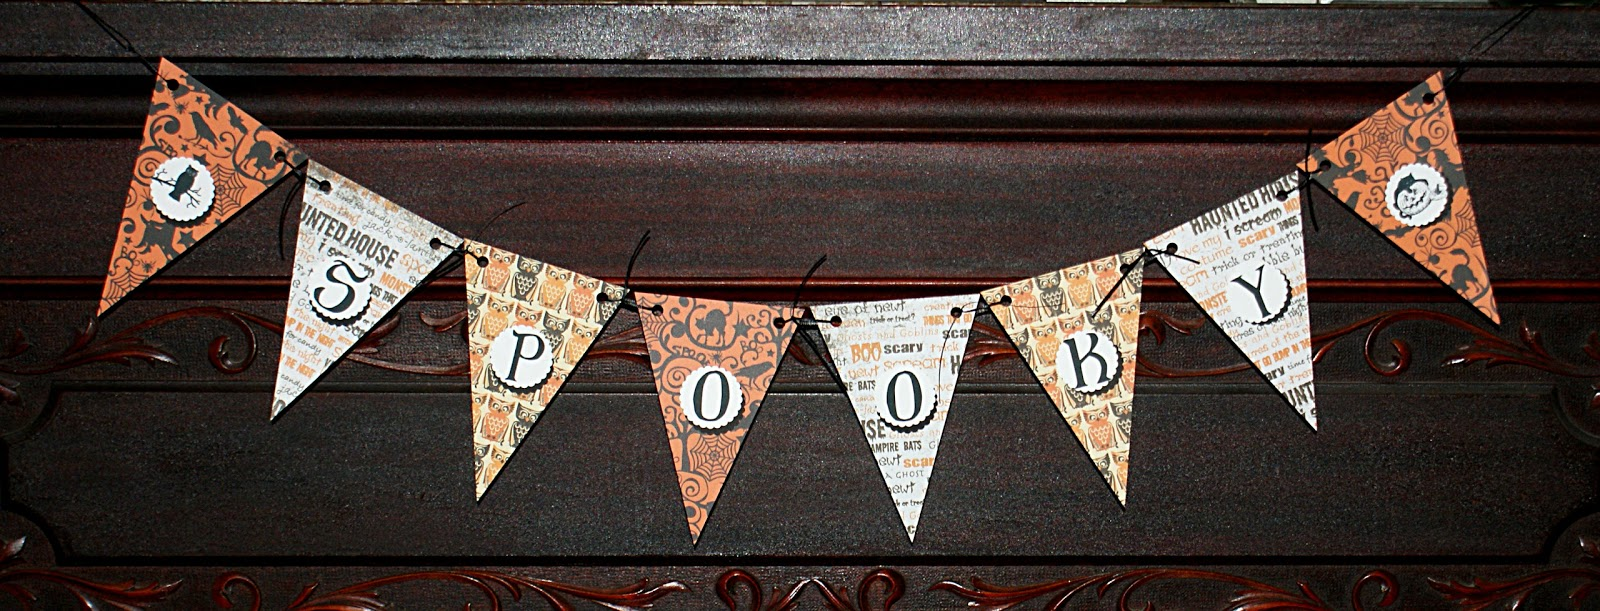 13moons, Poetry, Art and Herbs in the Garden: Halloween Party Ideas